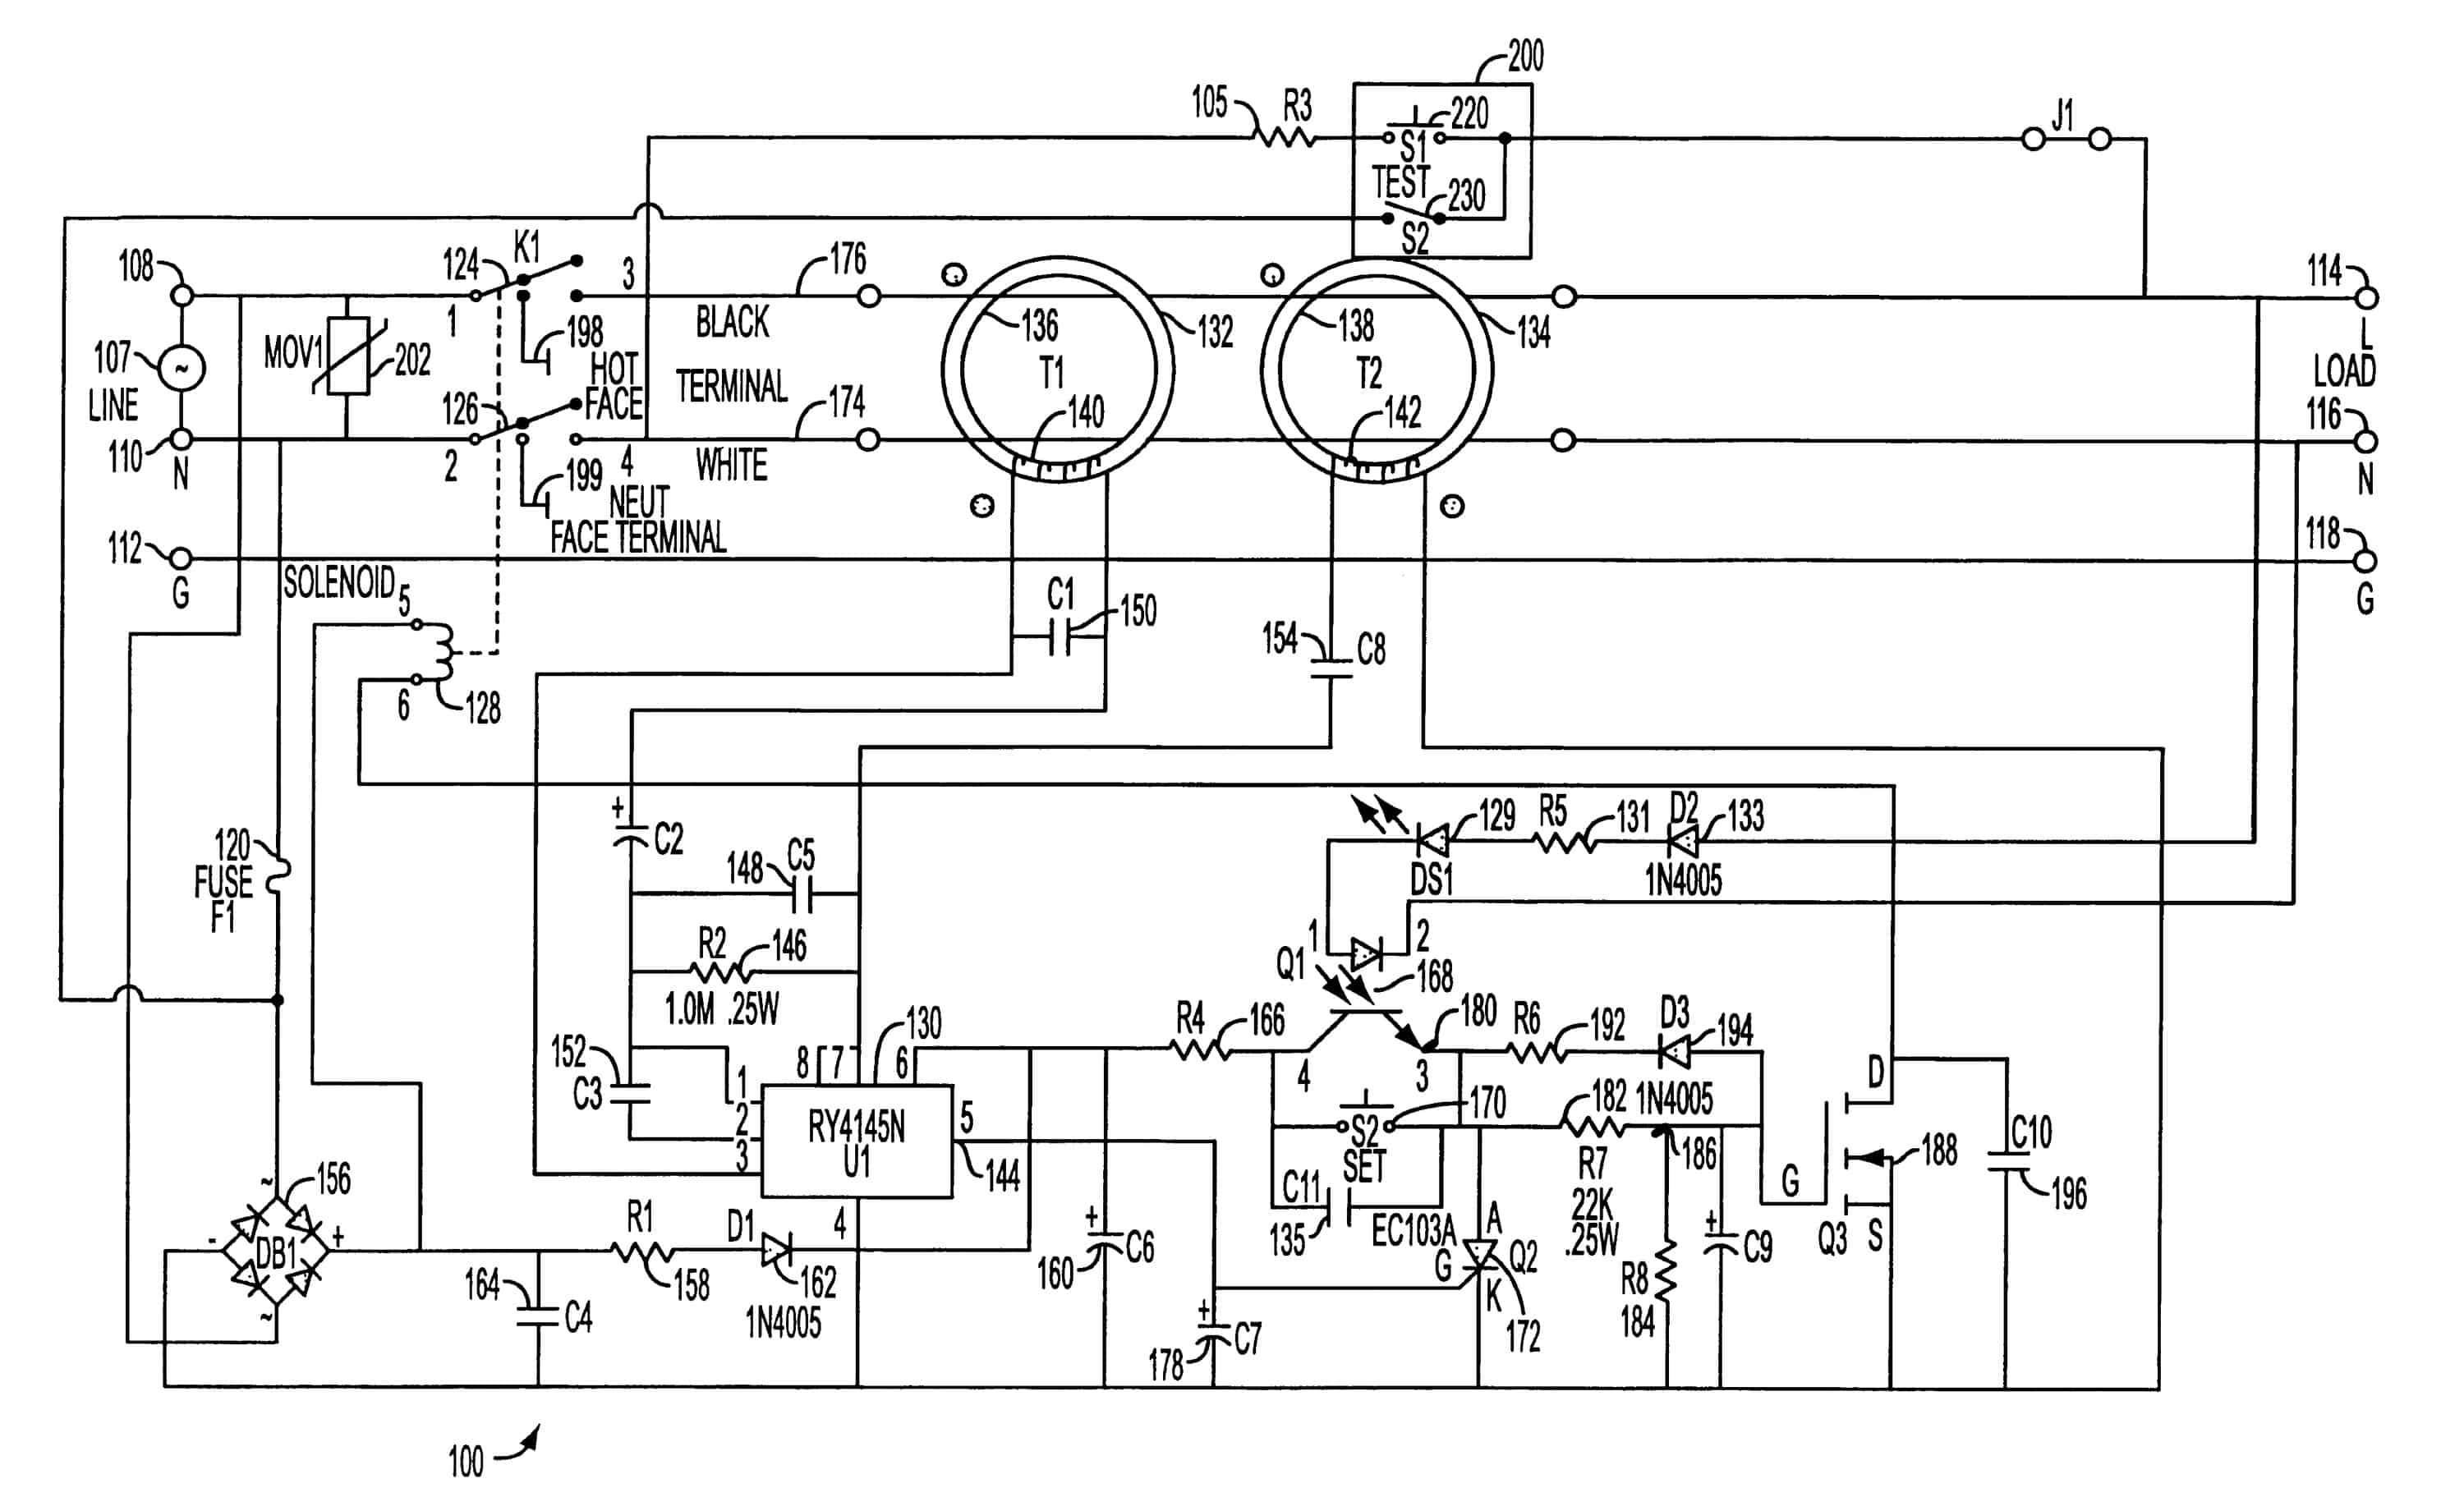 gfci circuit diagram pourbaix nickel williams electric 510 339 5601 oakland